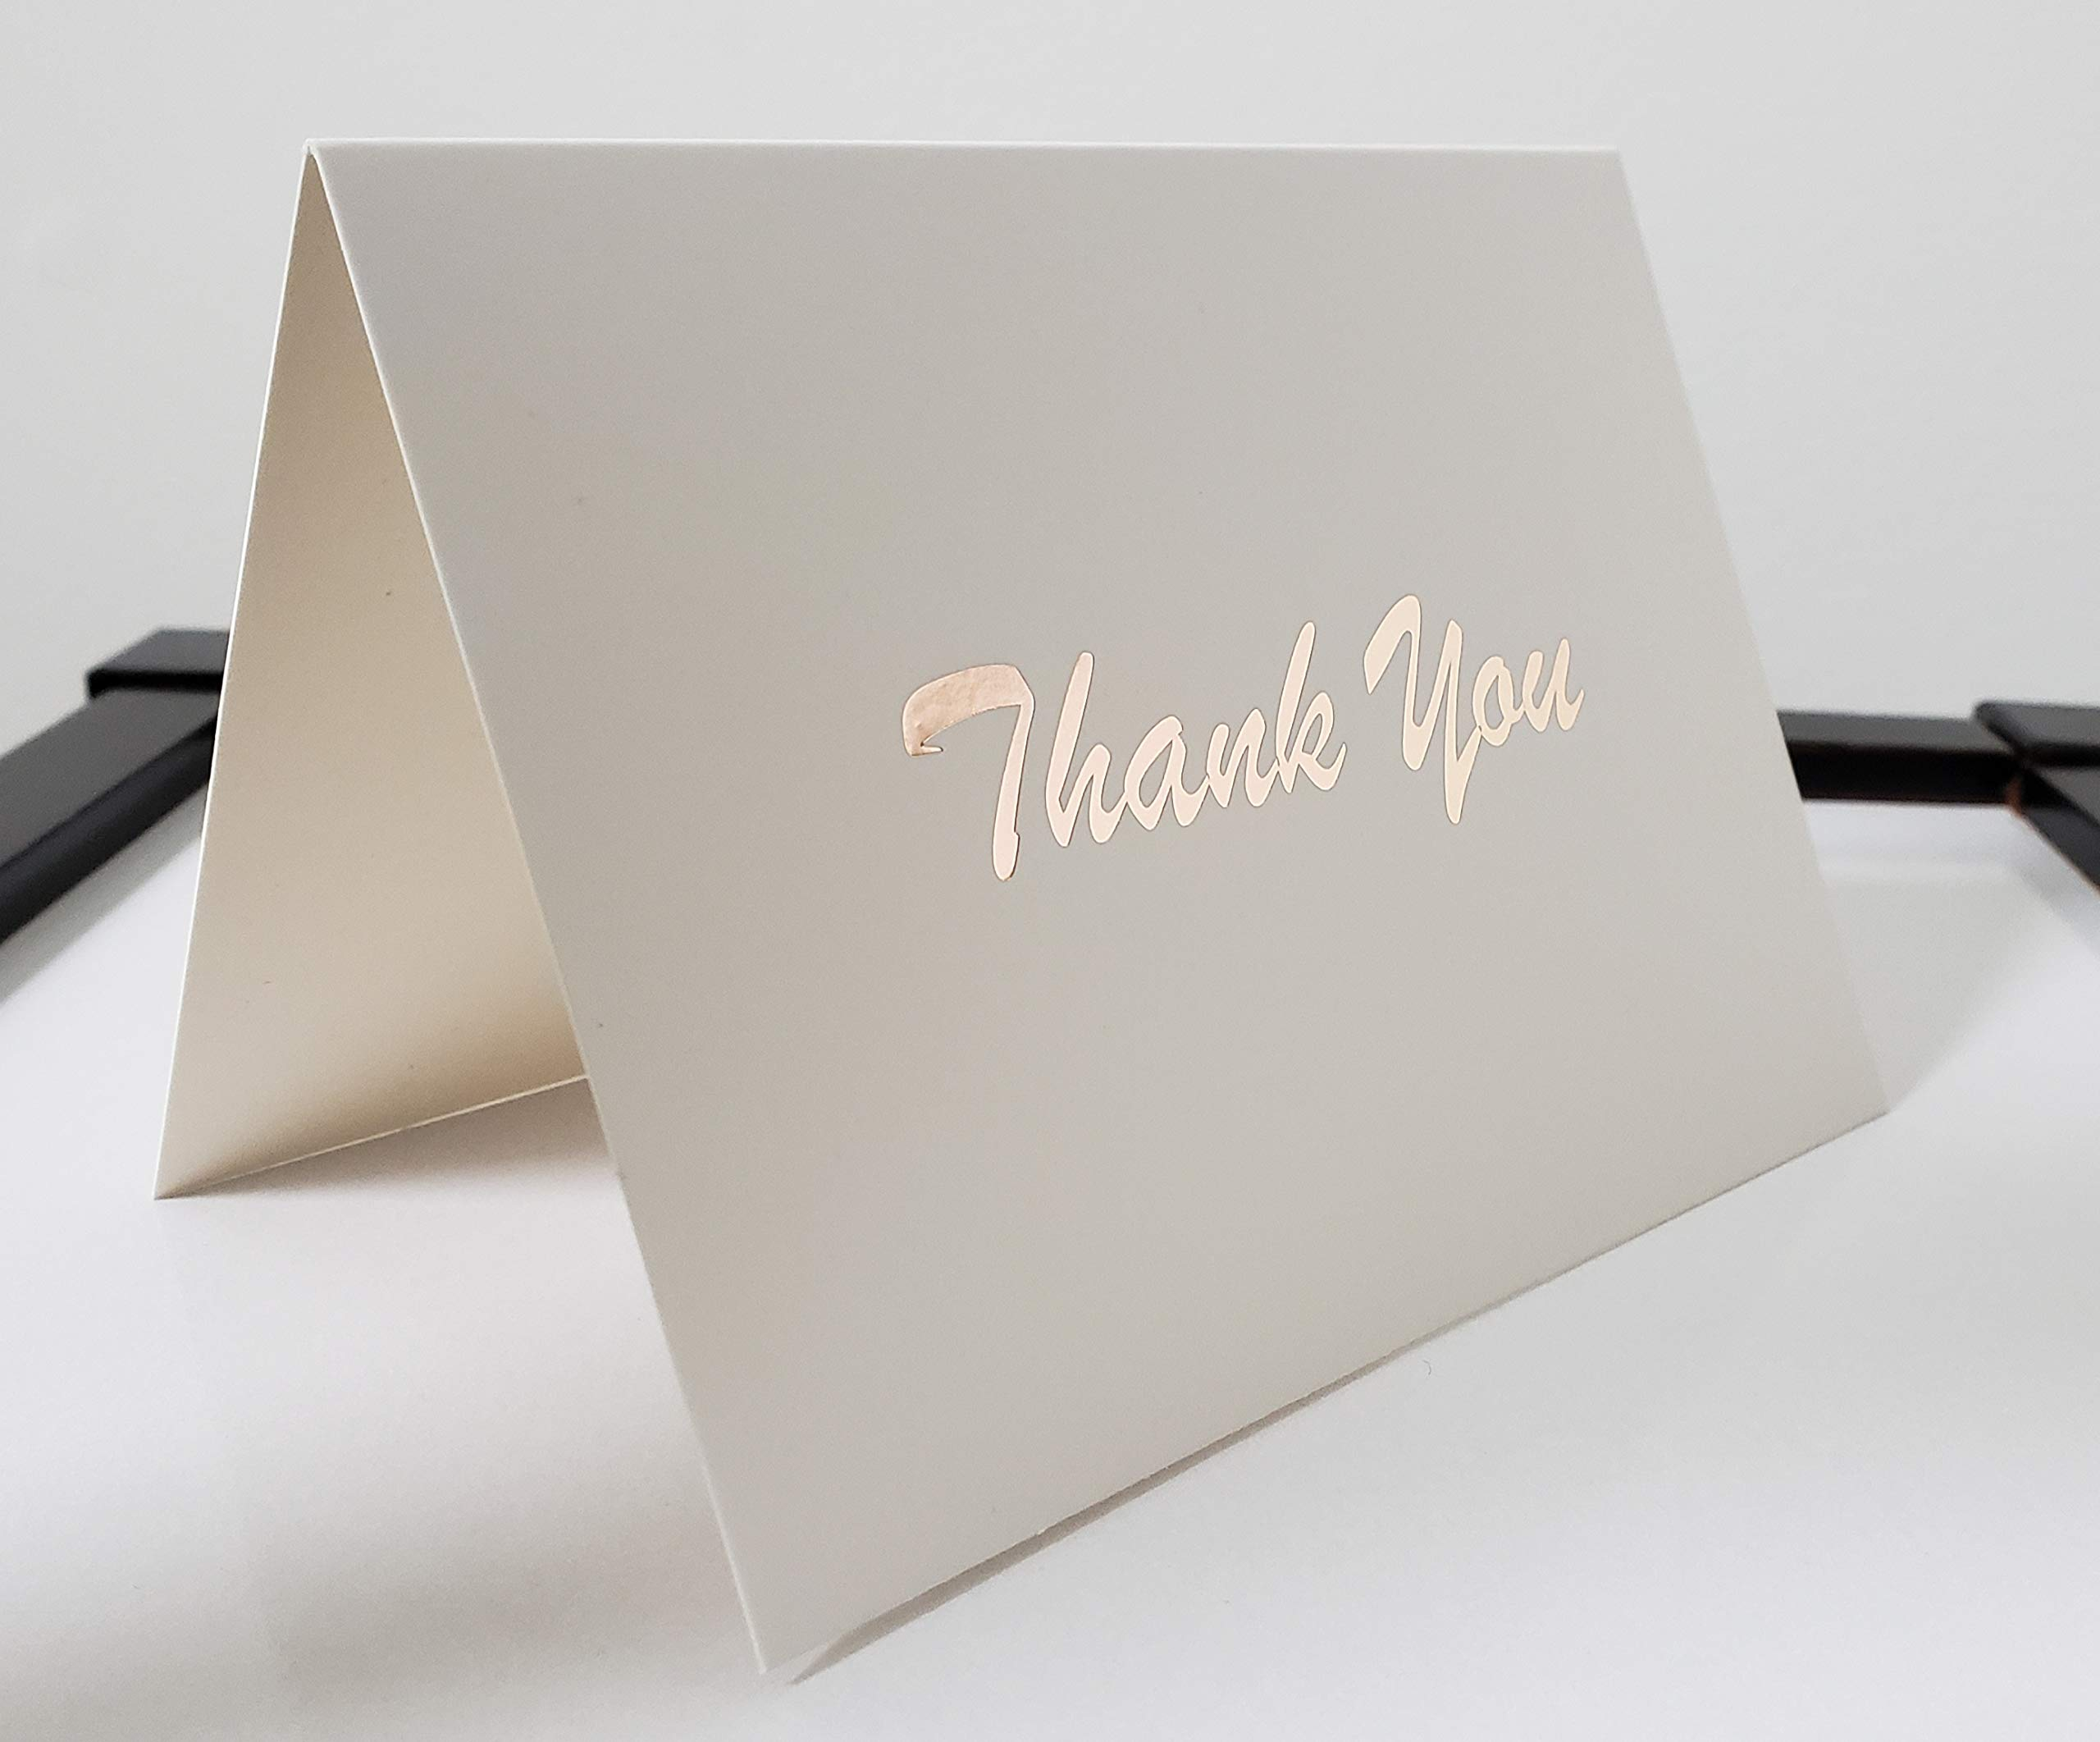 Thank You Cards - 100 Count - White Cards with Rose Gold Foil Text - Blank Inside, Includes Cards, Envelopes, and Seal Stickers; Great for Weddings, Graduation, Baby Shower, Bridal Shower